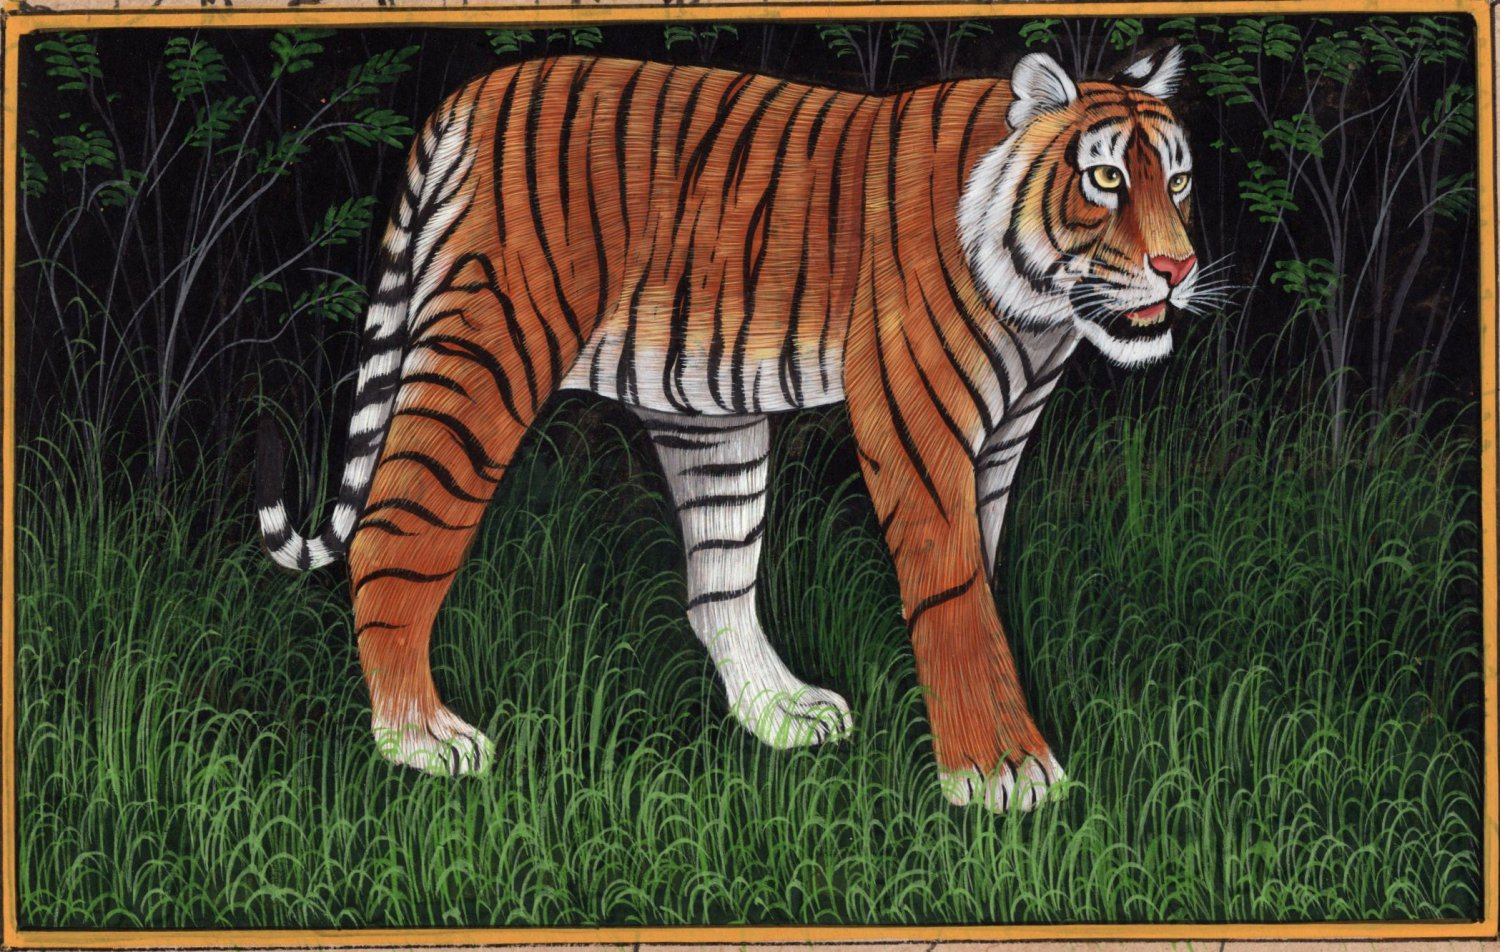 India Tiger Art Handmade Watercolor Miniature Wild Cat Animal Paper Painting